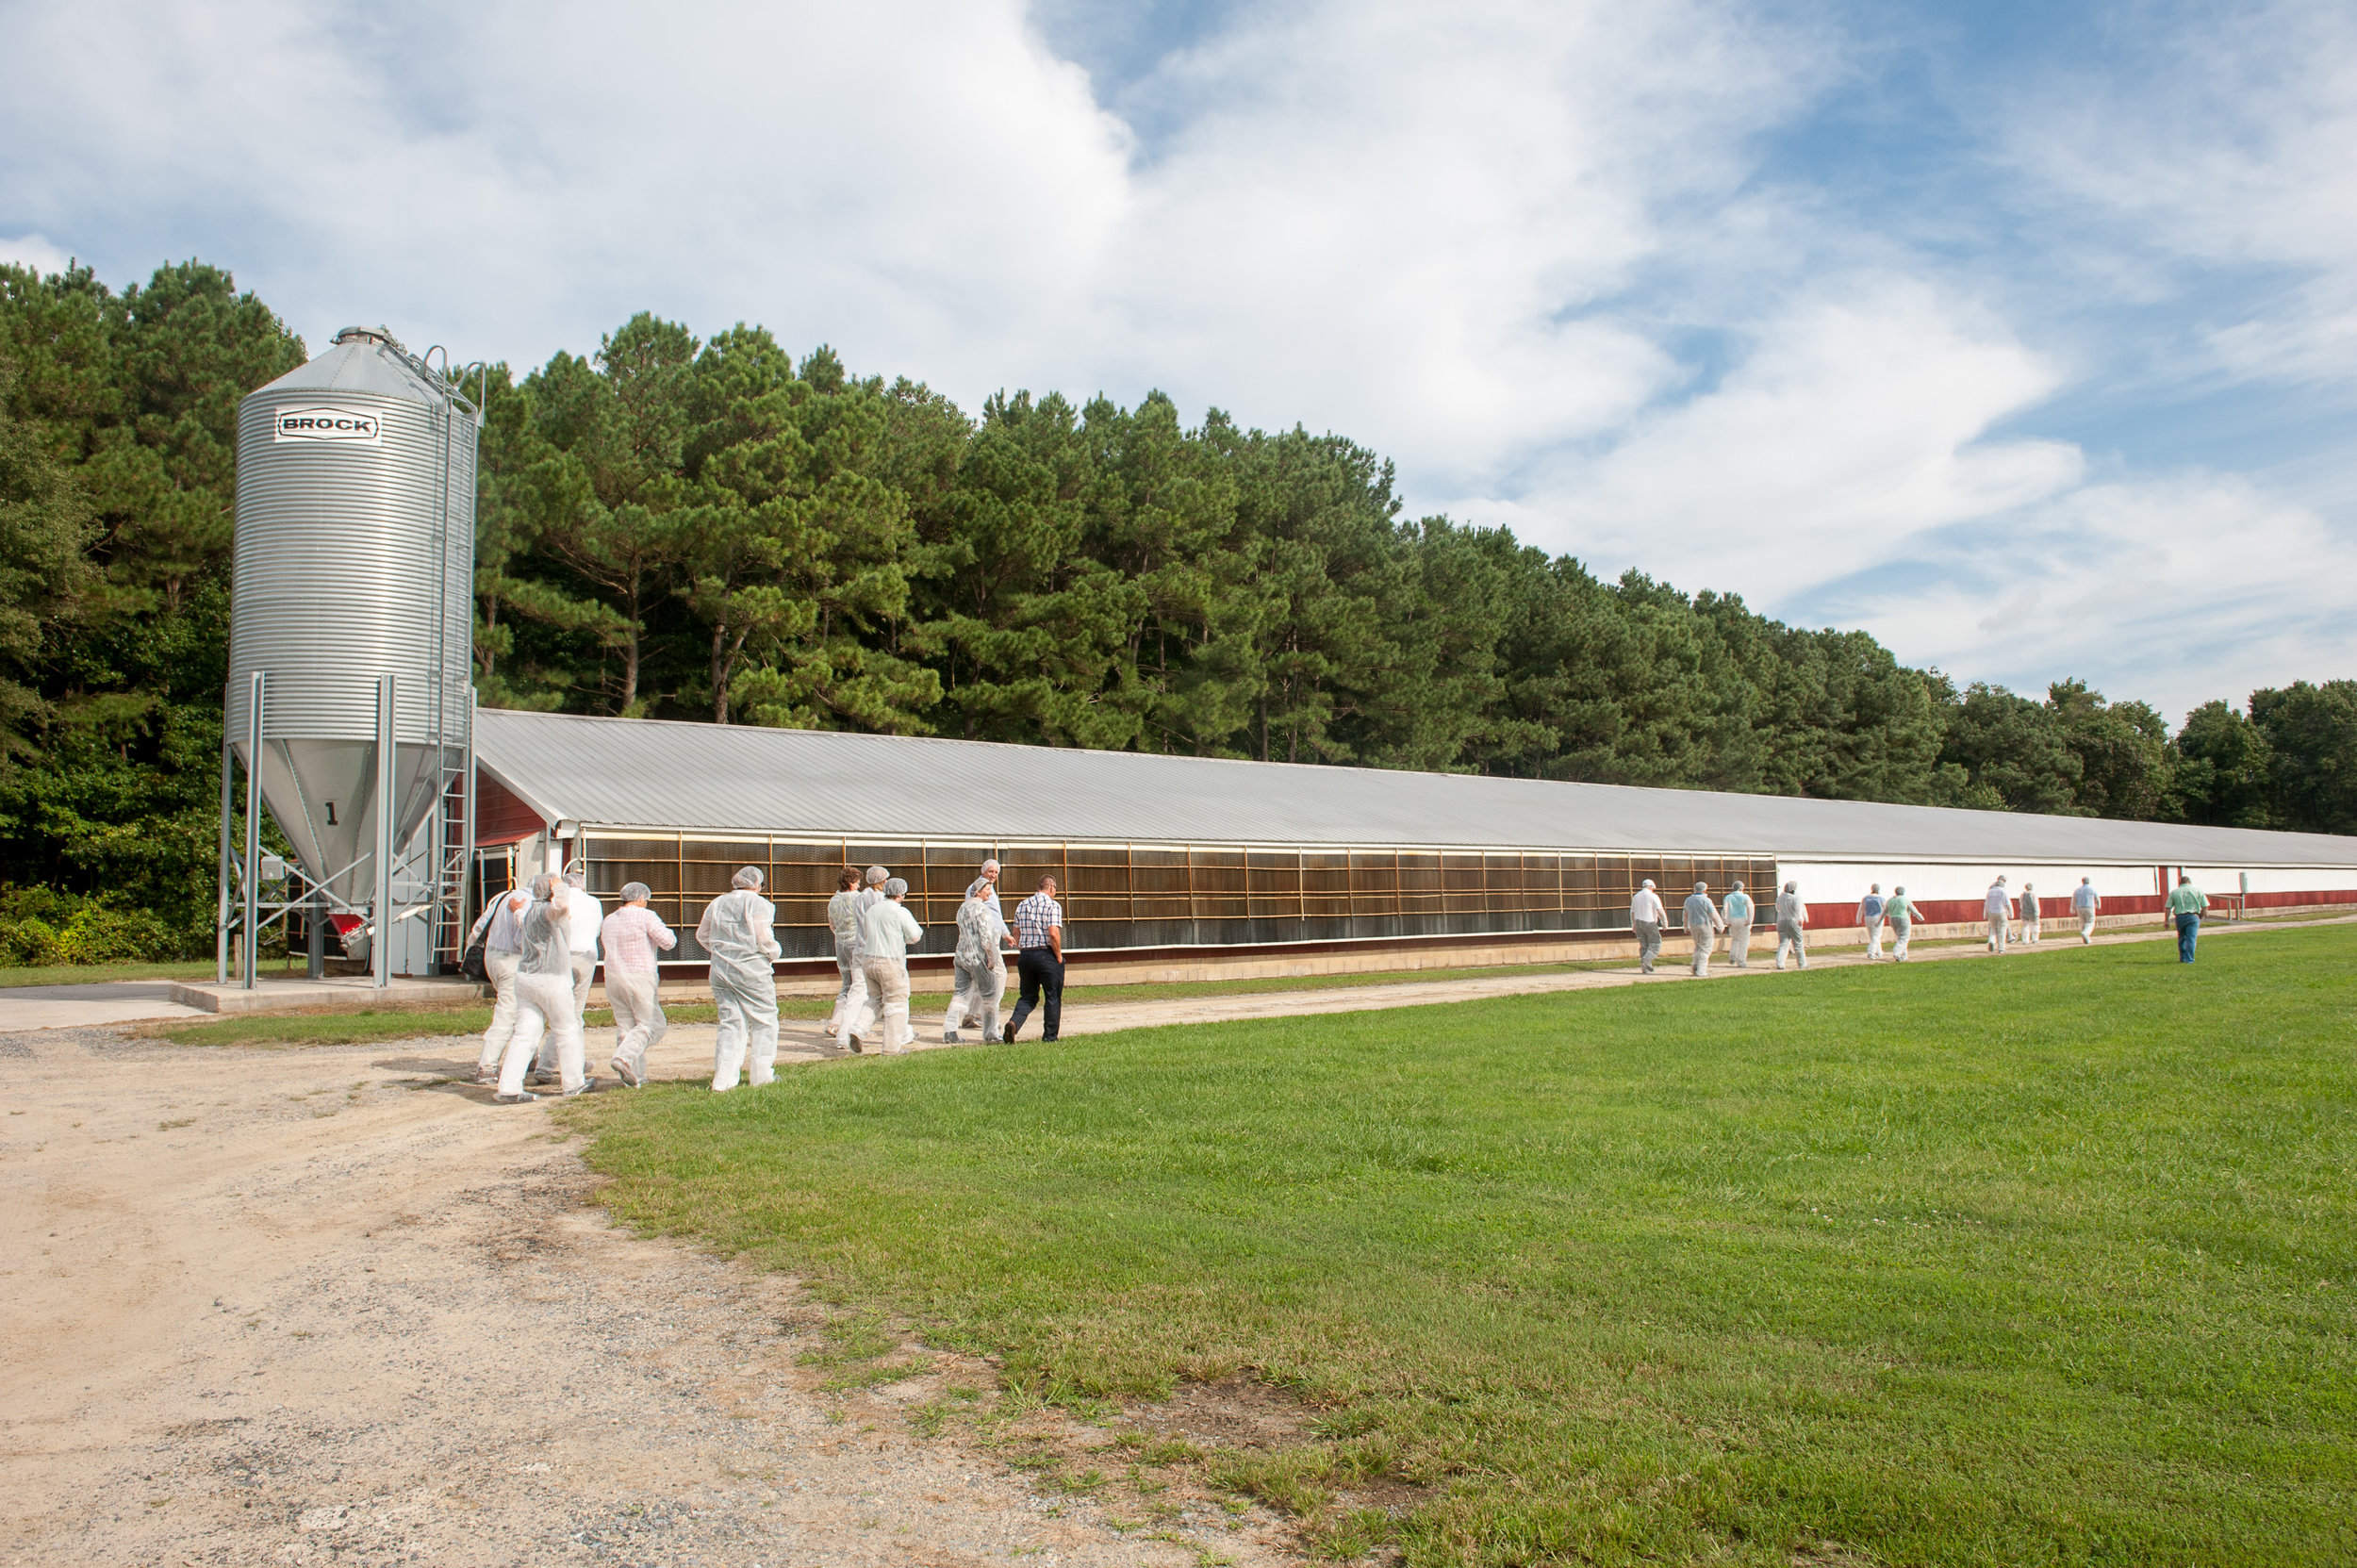 Poultry houses in Maryland with people walking in front of them.  Image by Edwin Remsberg